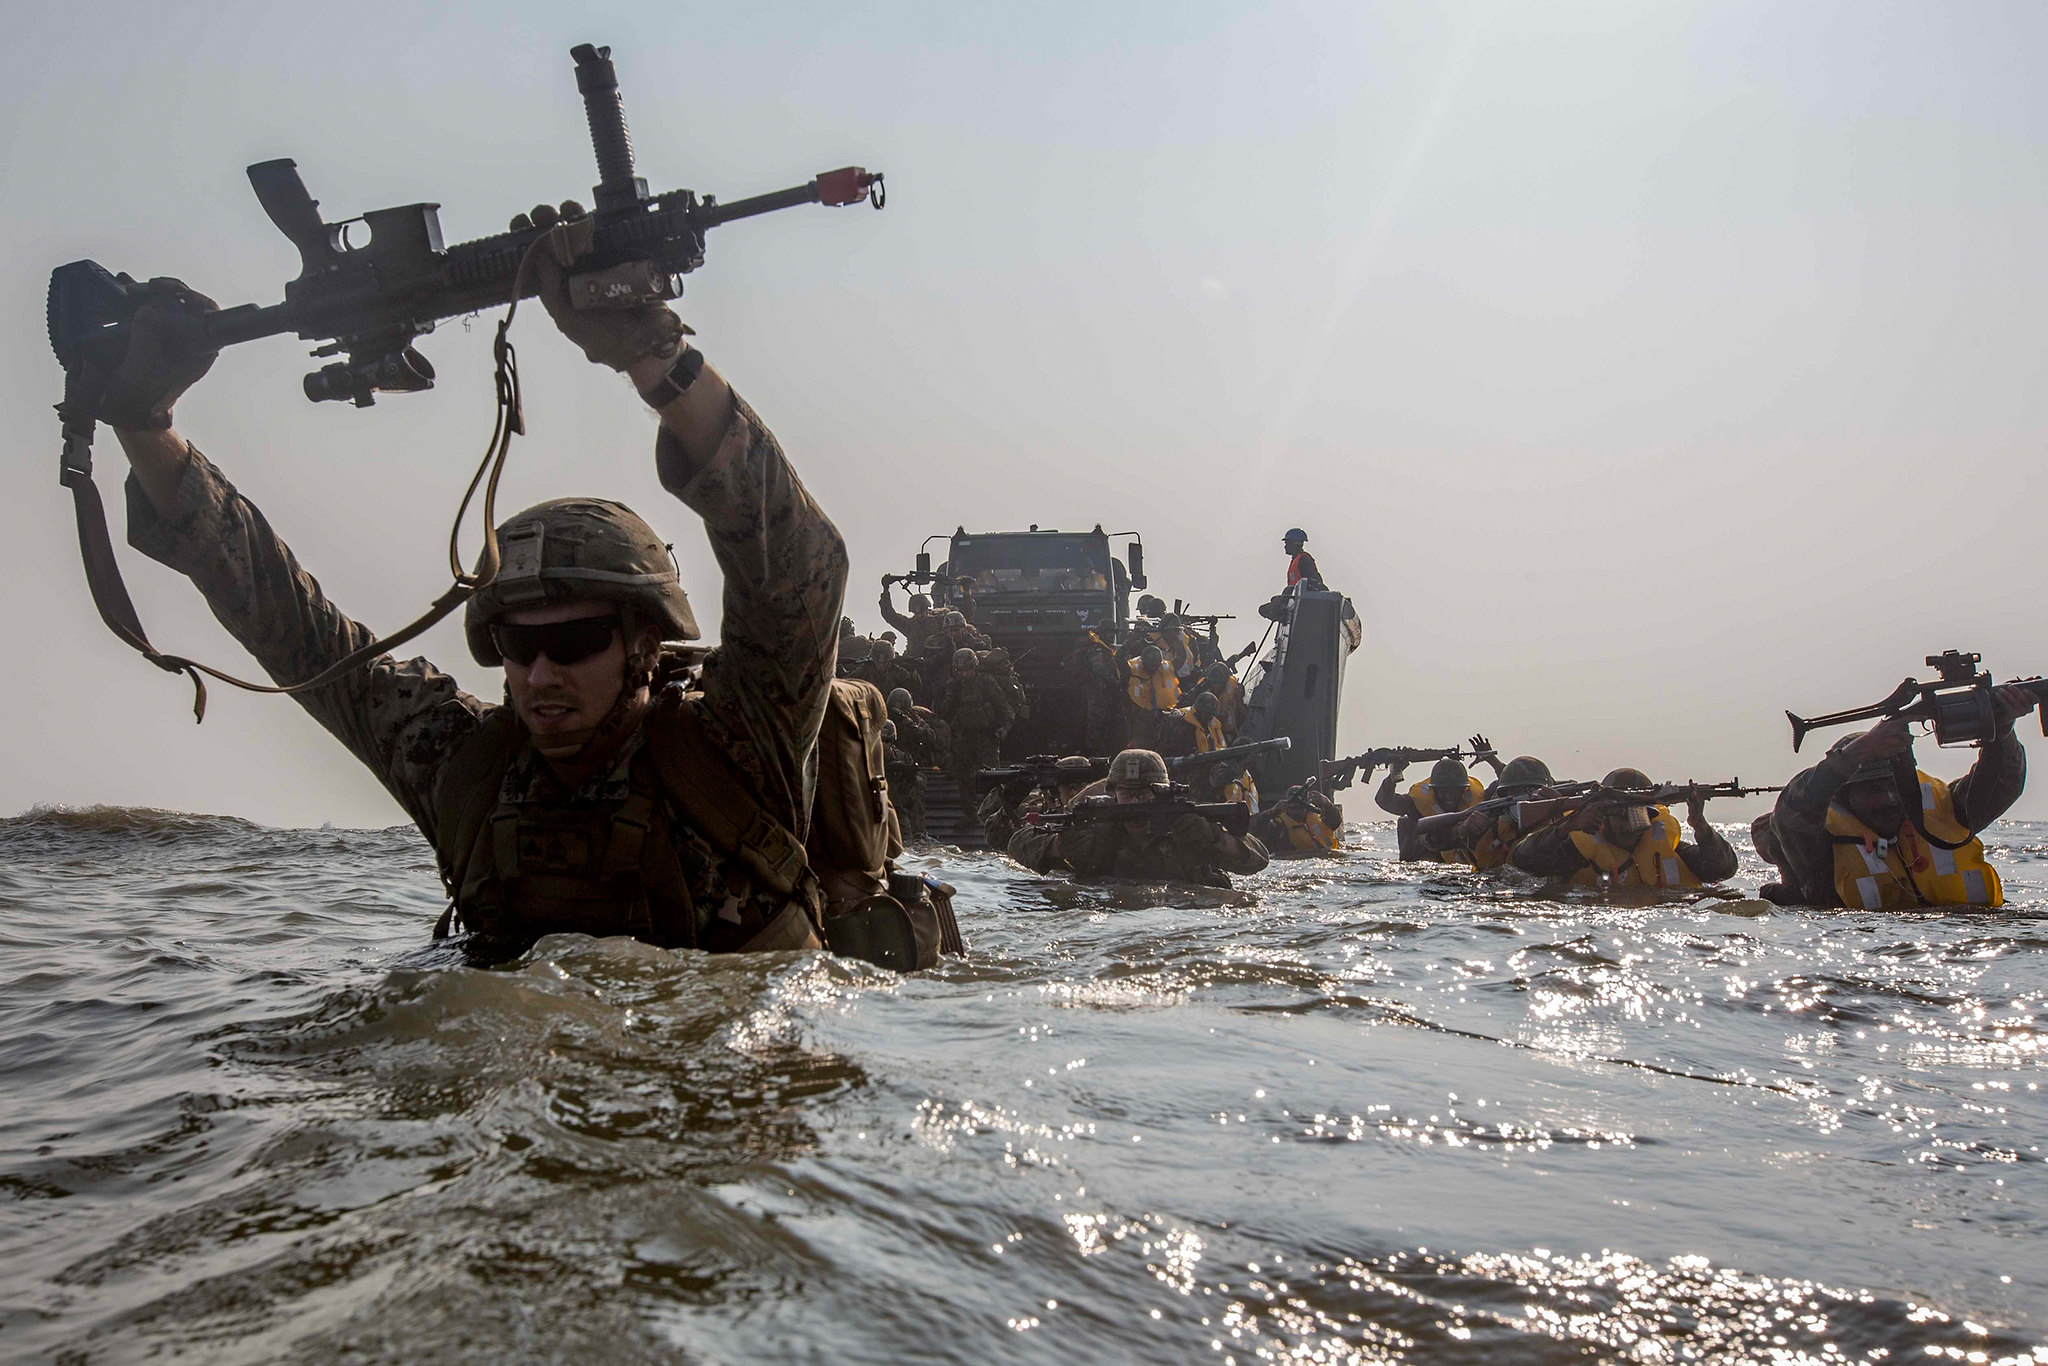 U.S. Marines and members of the Indian military wade to shore Nov. 19, 2019, during exercise Tiger TRIUMPH on Kakinada Beach, India. (Lance Cpl. Christian Ayers/Marine Corps)